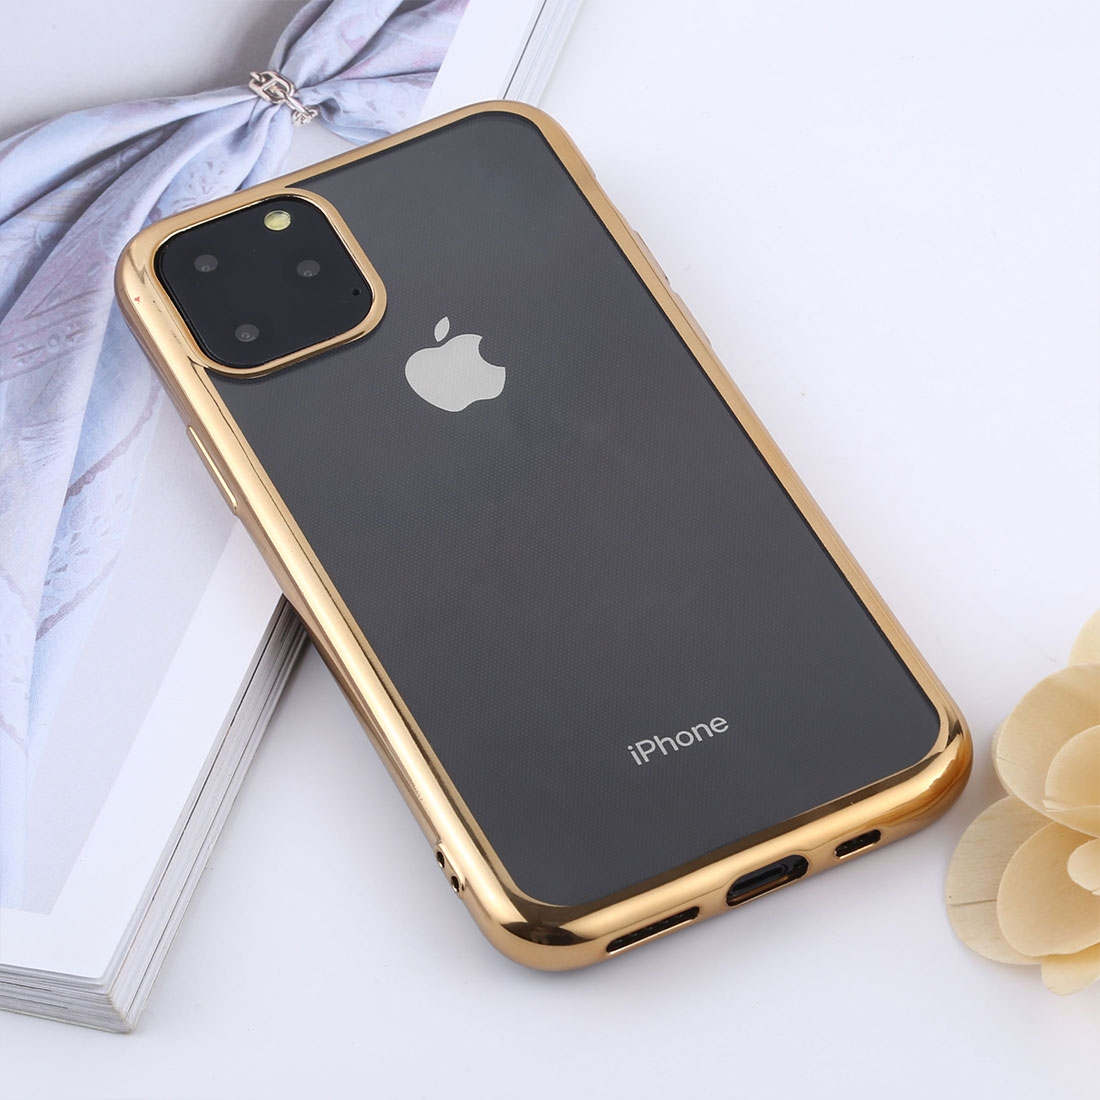 Transparent TPU Anti-Drop And Waterproof Mobile Phone Protective Case for iPhone 11 Pro Max